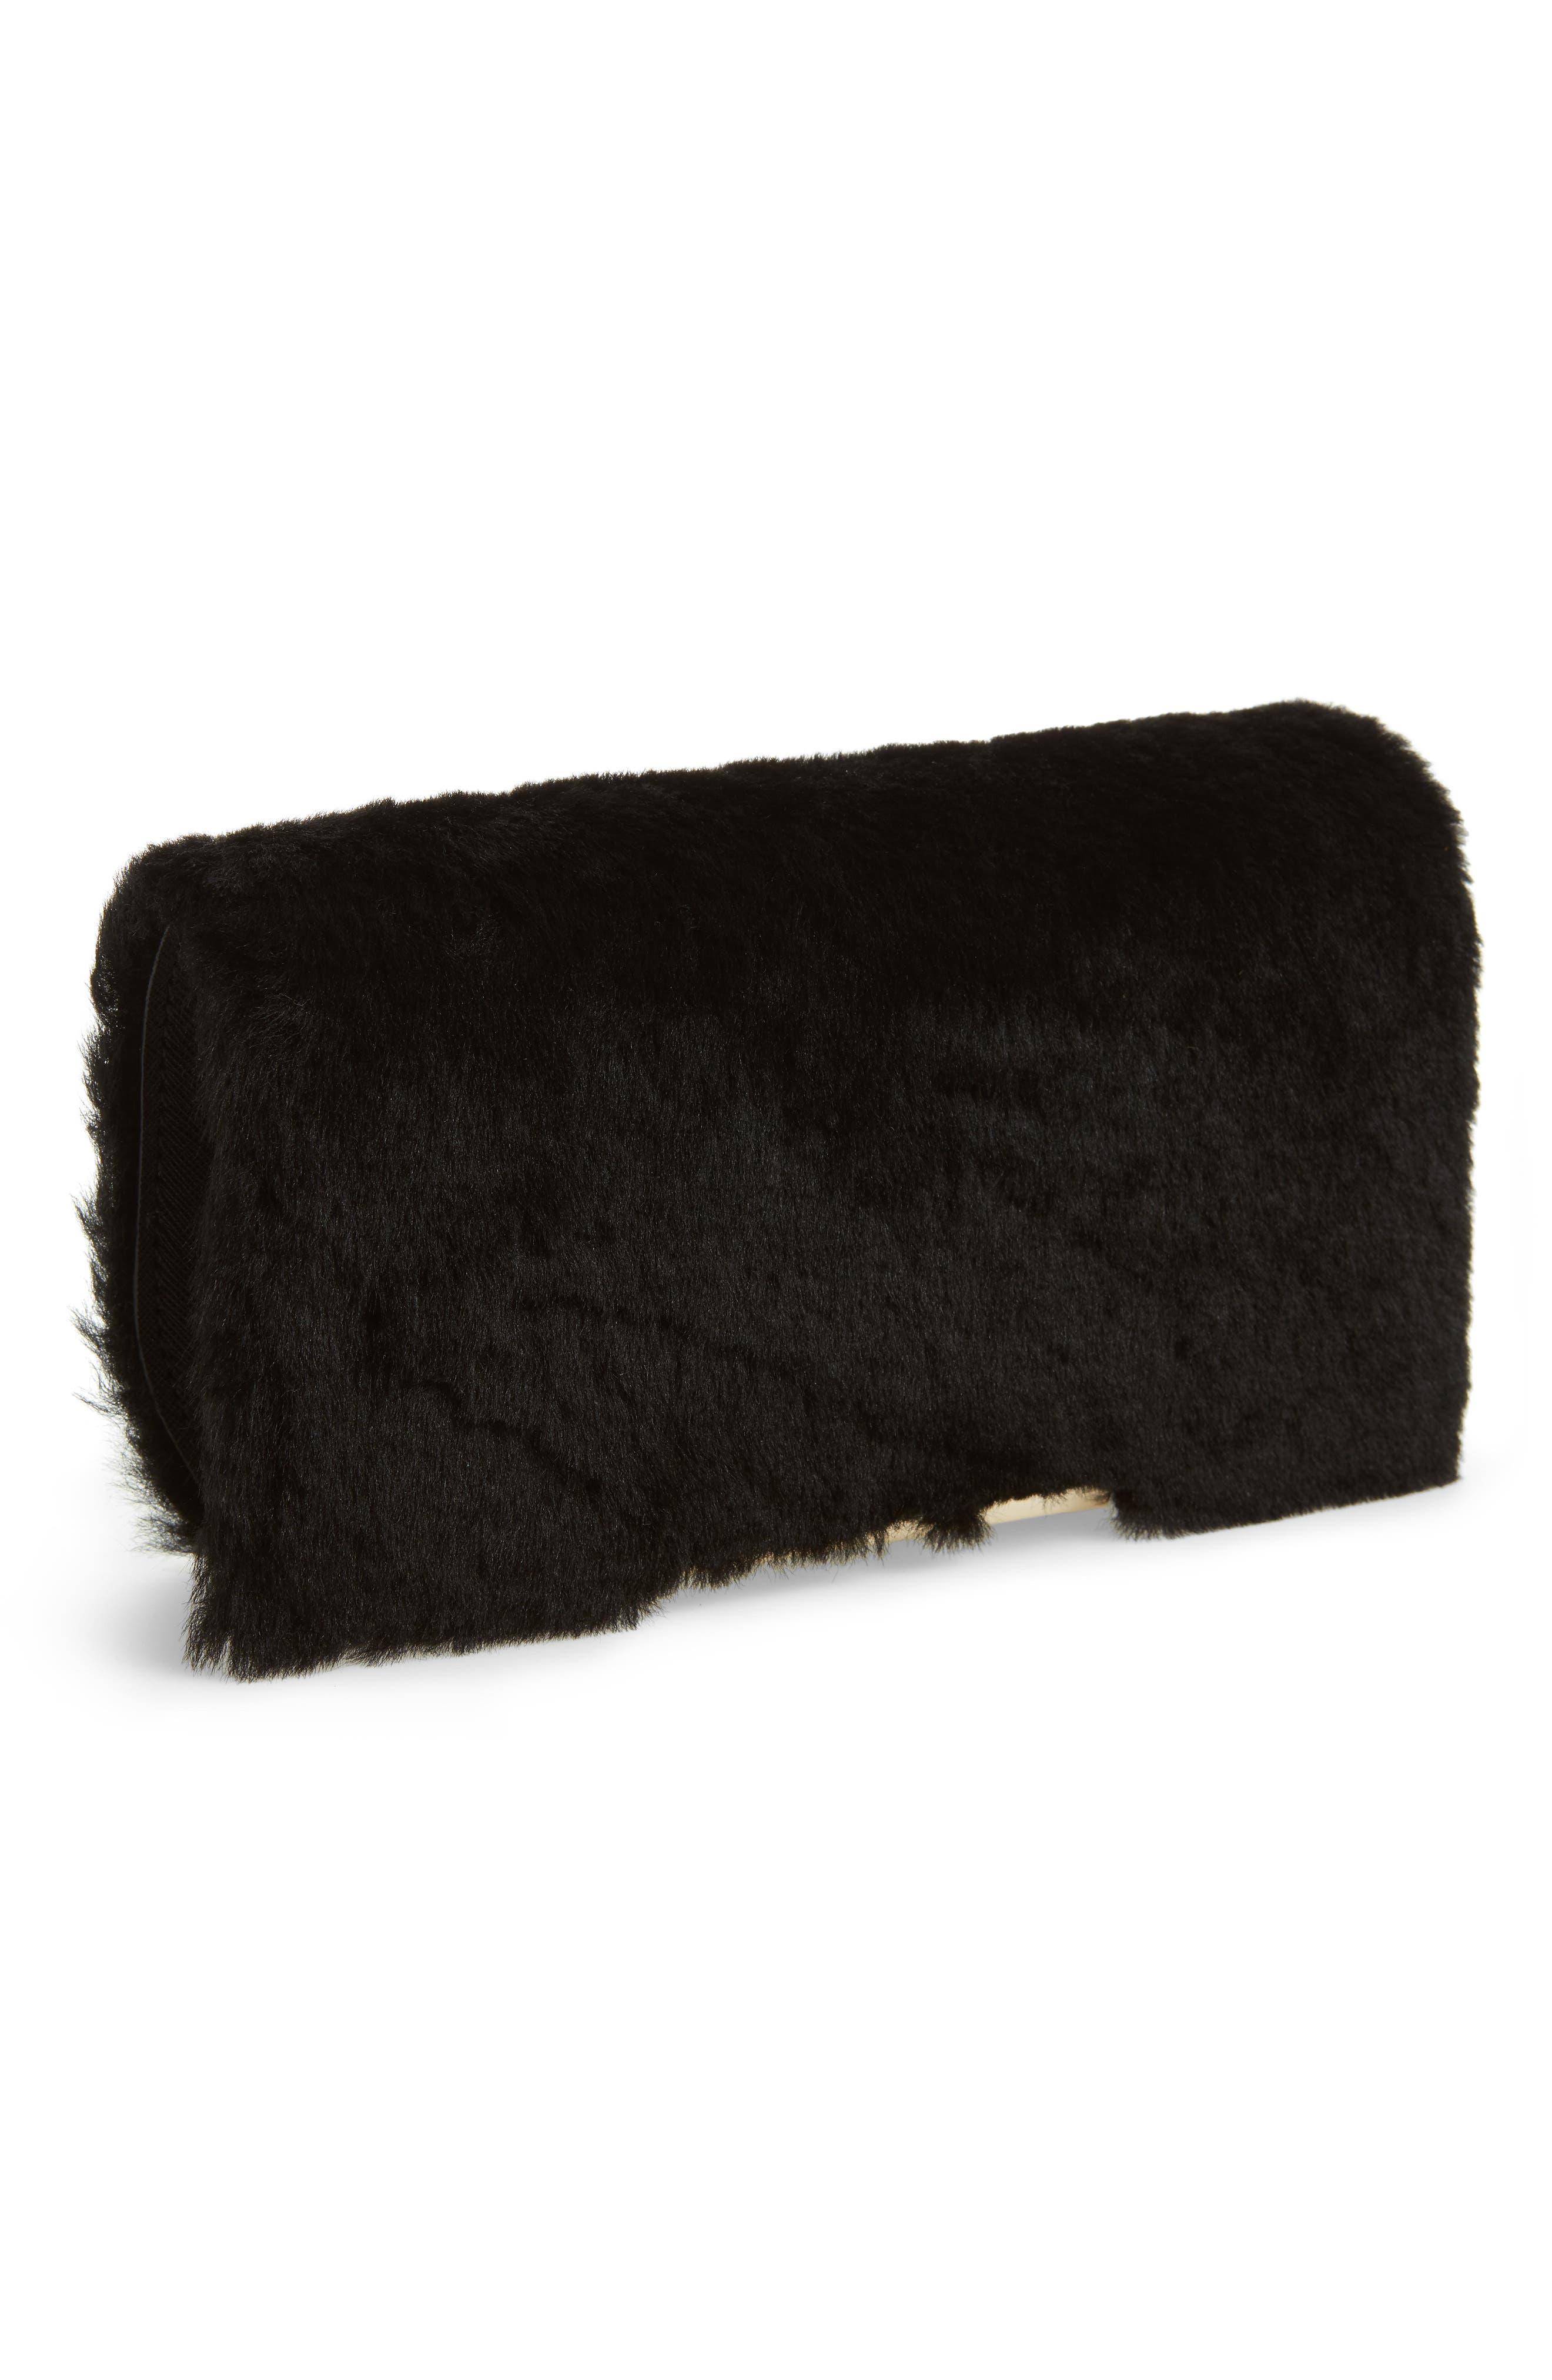 make it mine genuine shearling snap-on accent flap,                         Main,                         color, Black